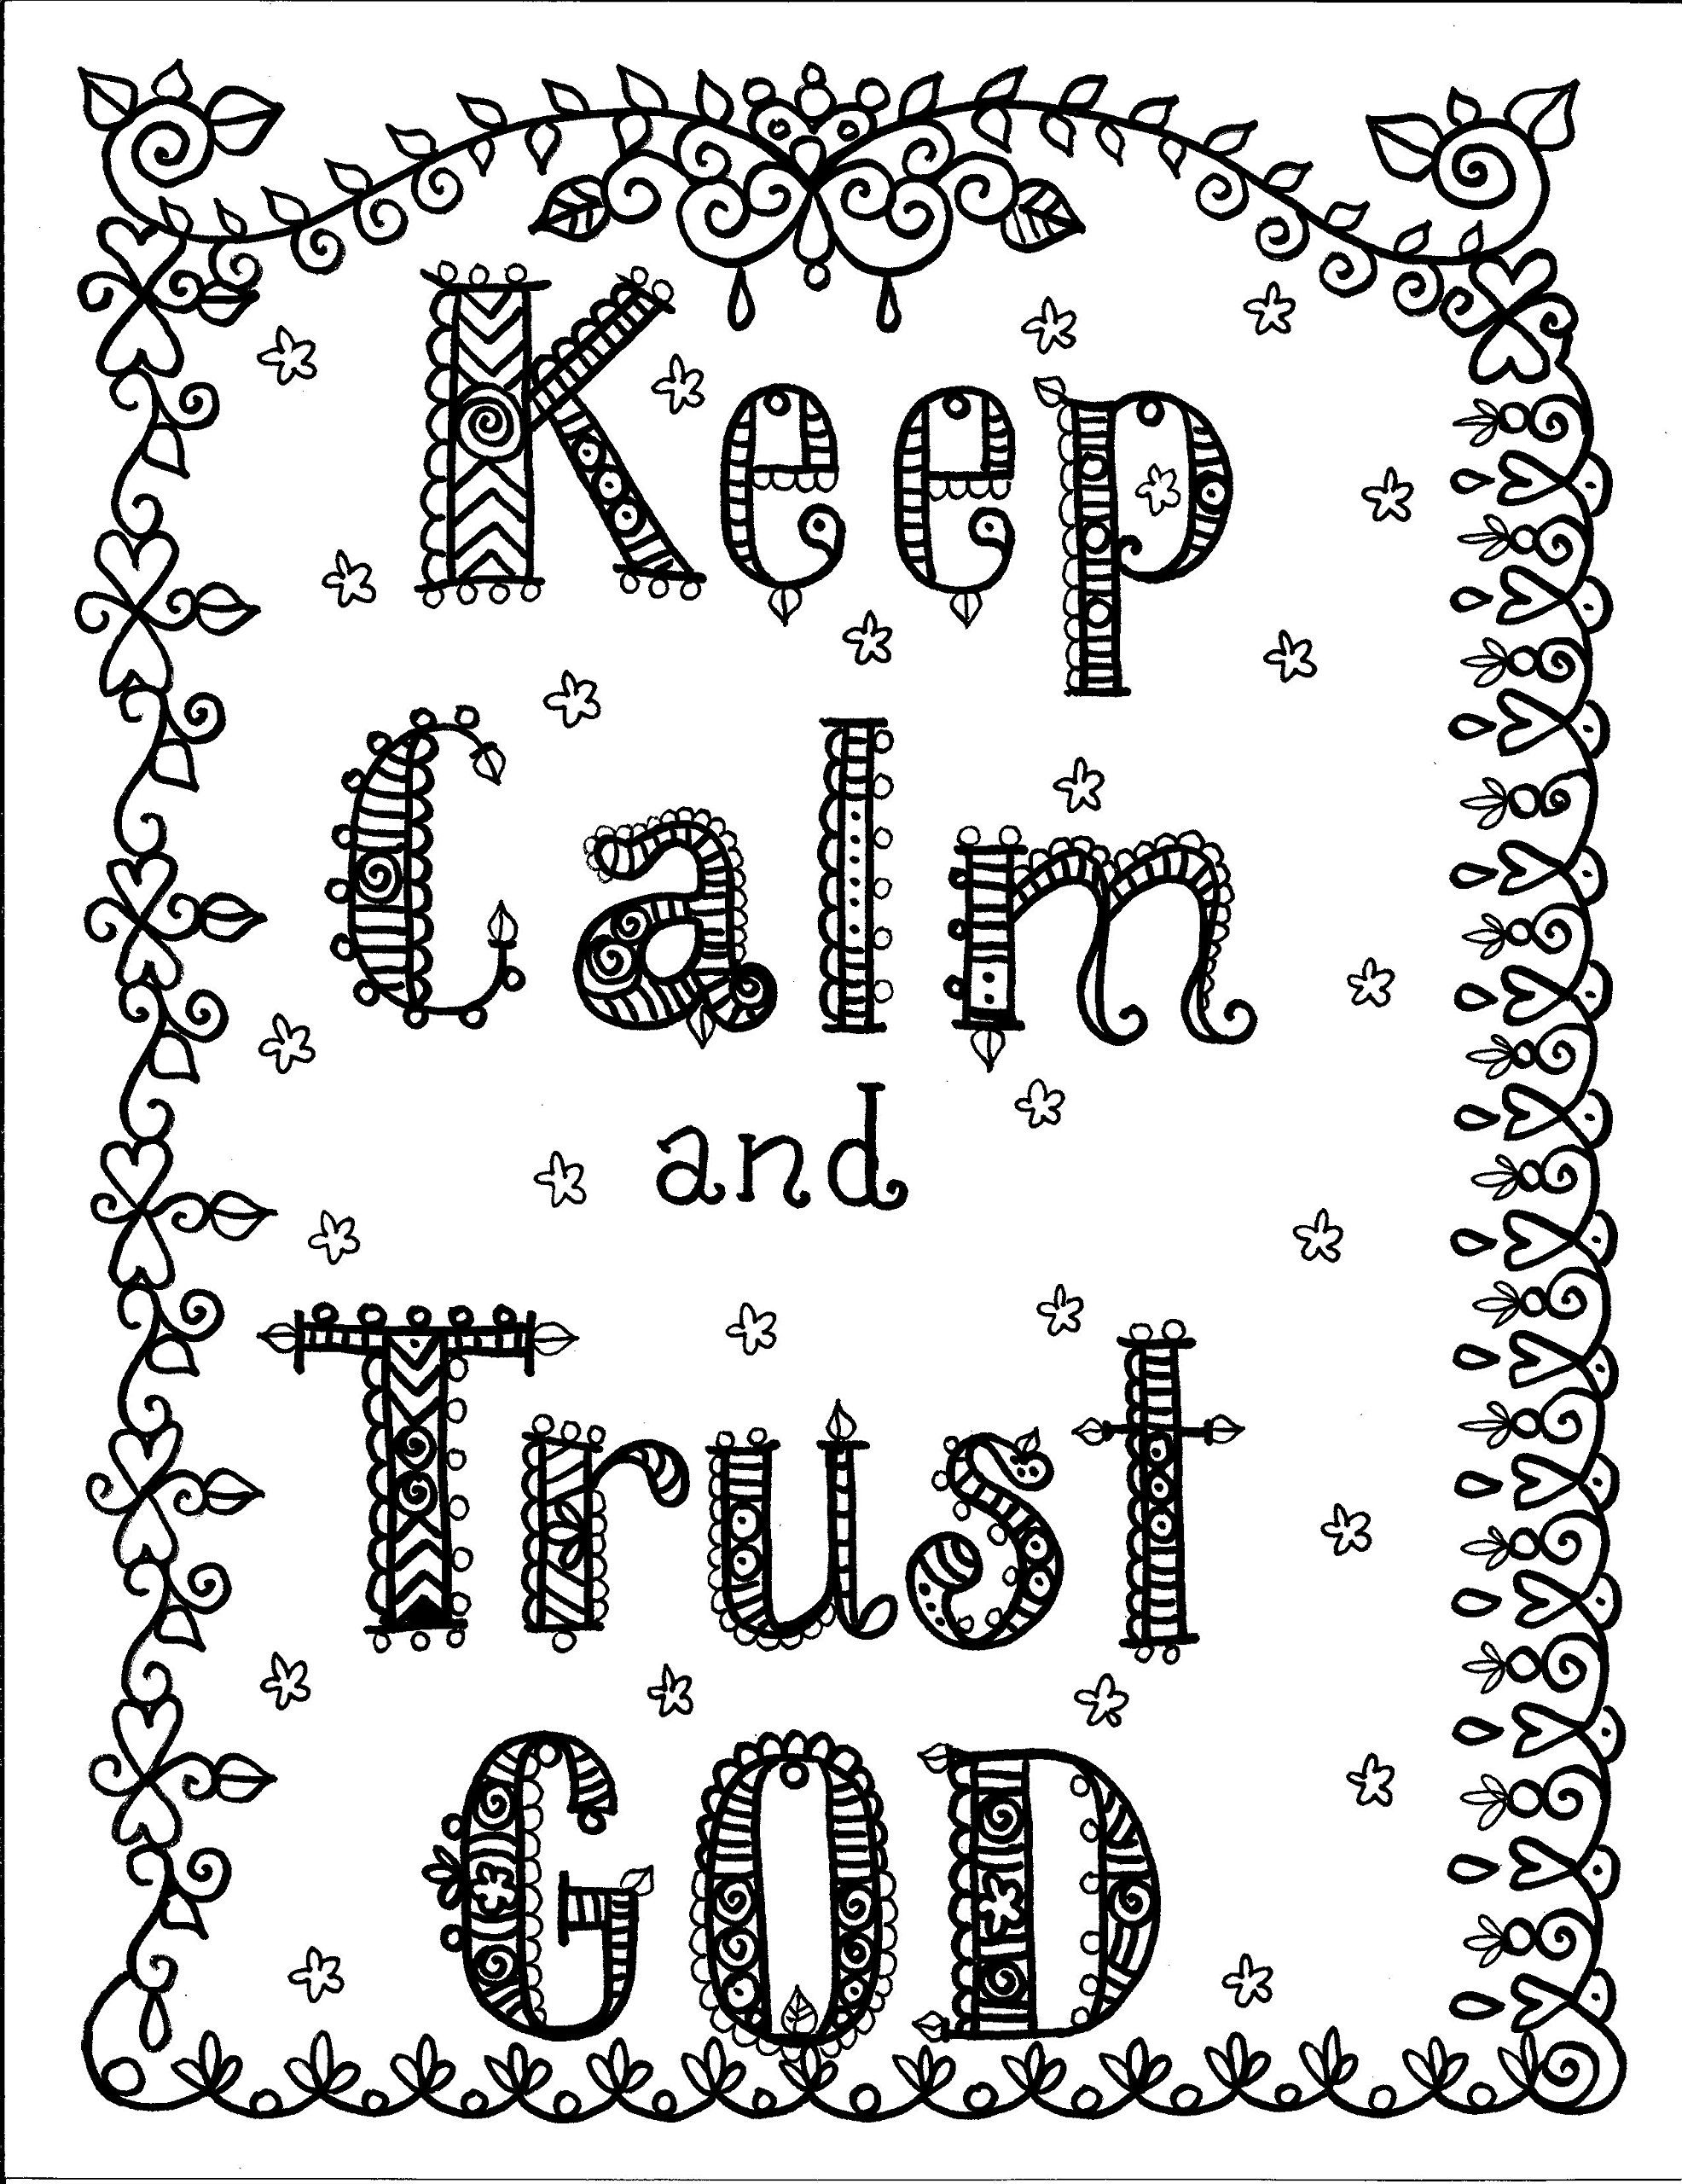 P 40 coloring pages - God Is Good Inspirational Messages Of Hope Adult Coloring Book Wonderful Uplifting Messages That